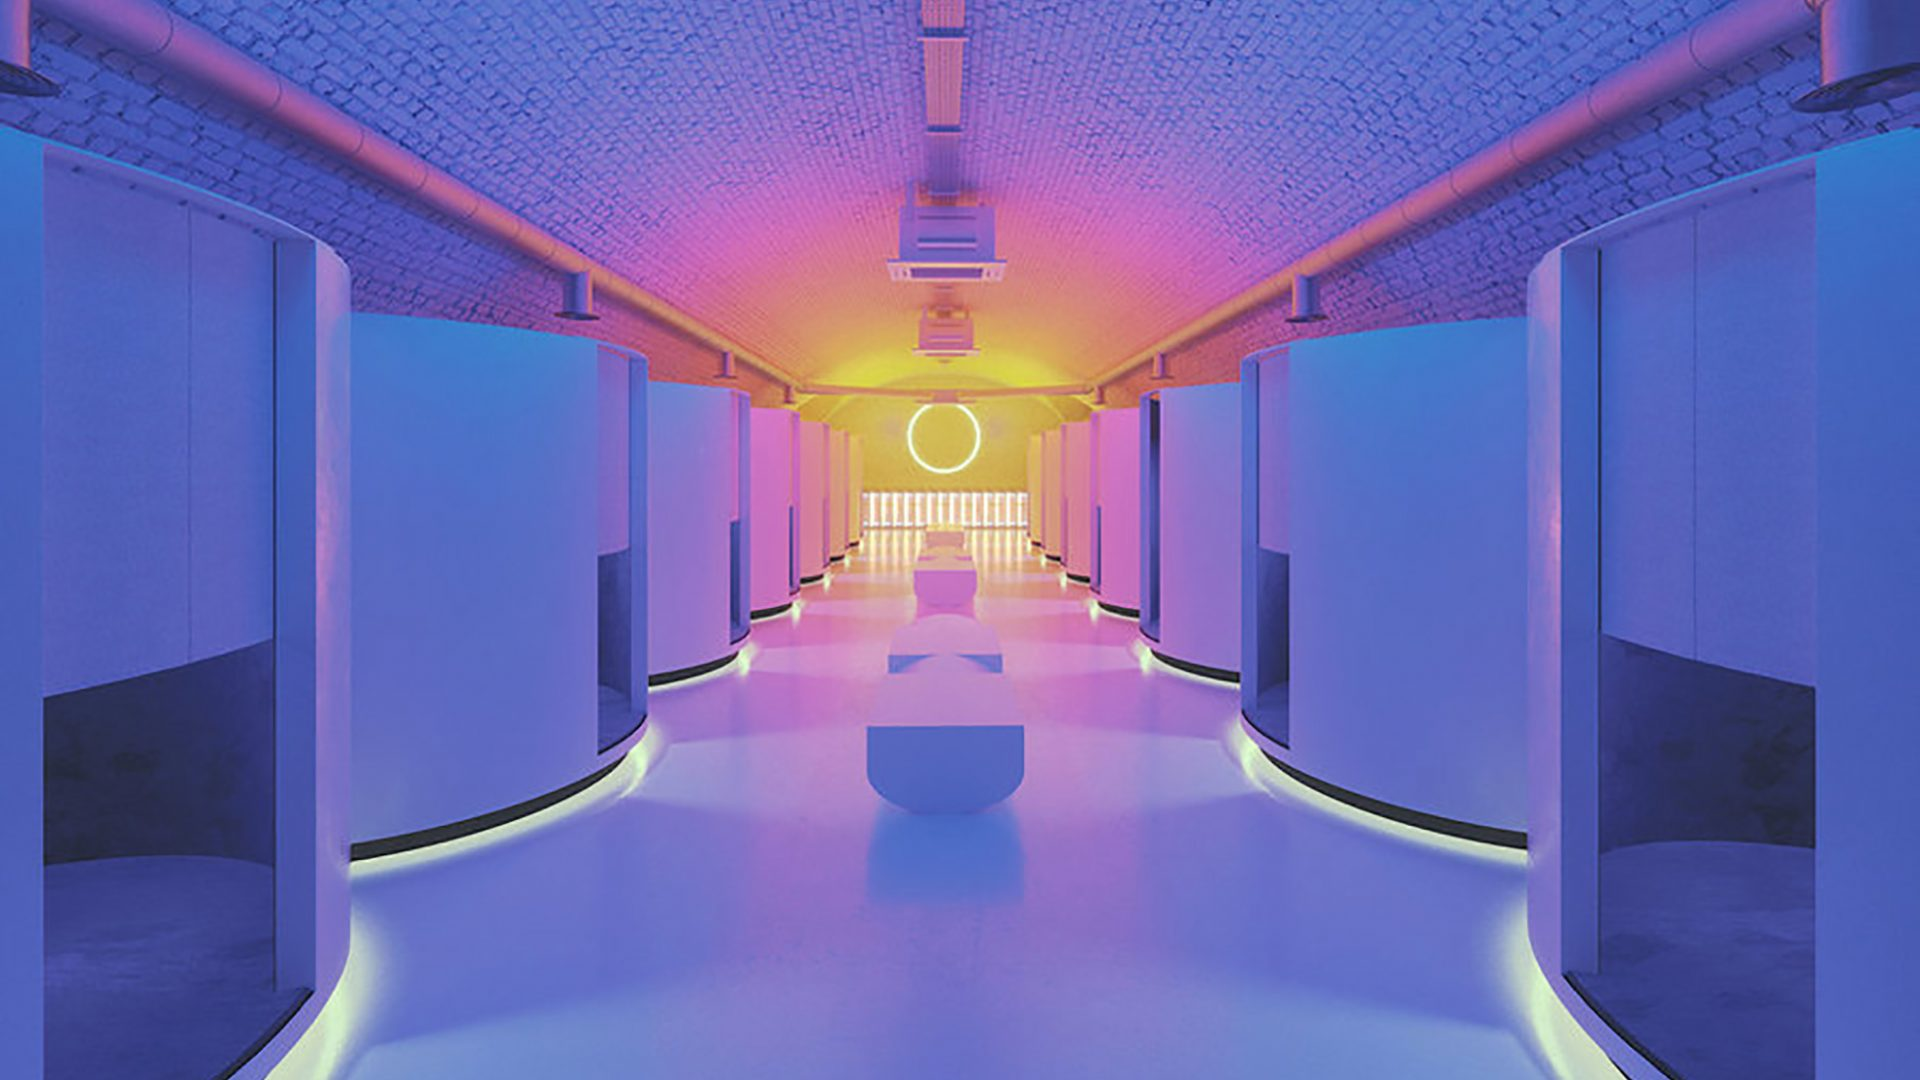 Architecture studio Red Deer has completed a virtual reality entertainment space in an east London railway arch with neon interiors that draw on the work of light artist James Turrell. The Otherworld arcade concept is the first of its kind in the UK, and combines 14 virtual-reality immersion rooms, a bar and a poke kitchen serving raw fish dishes.